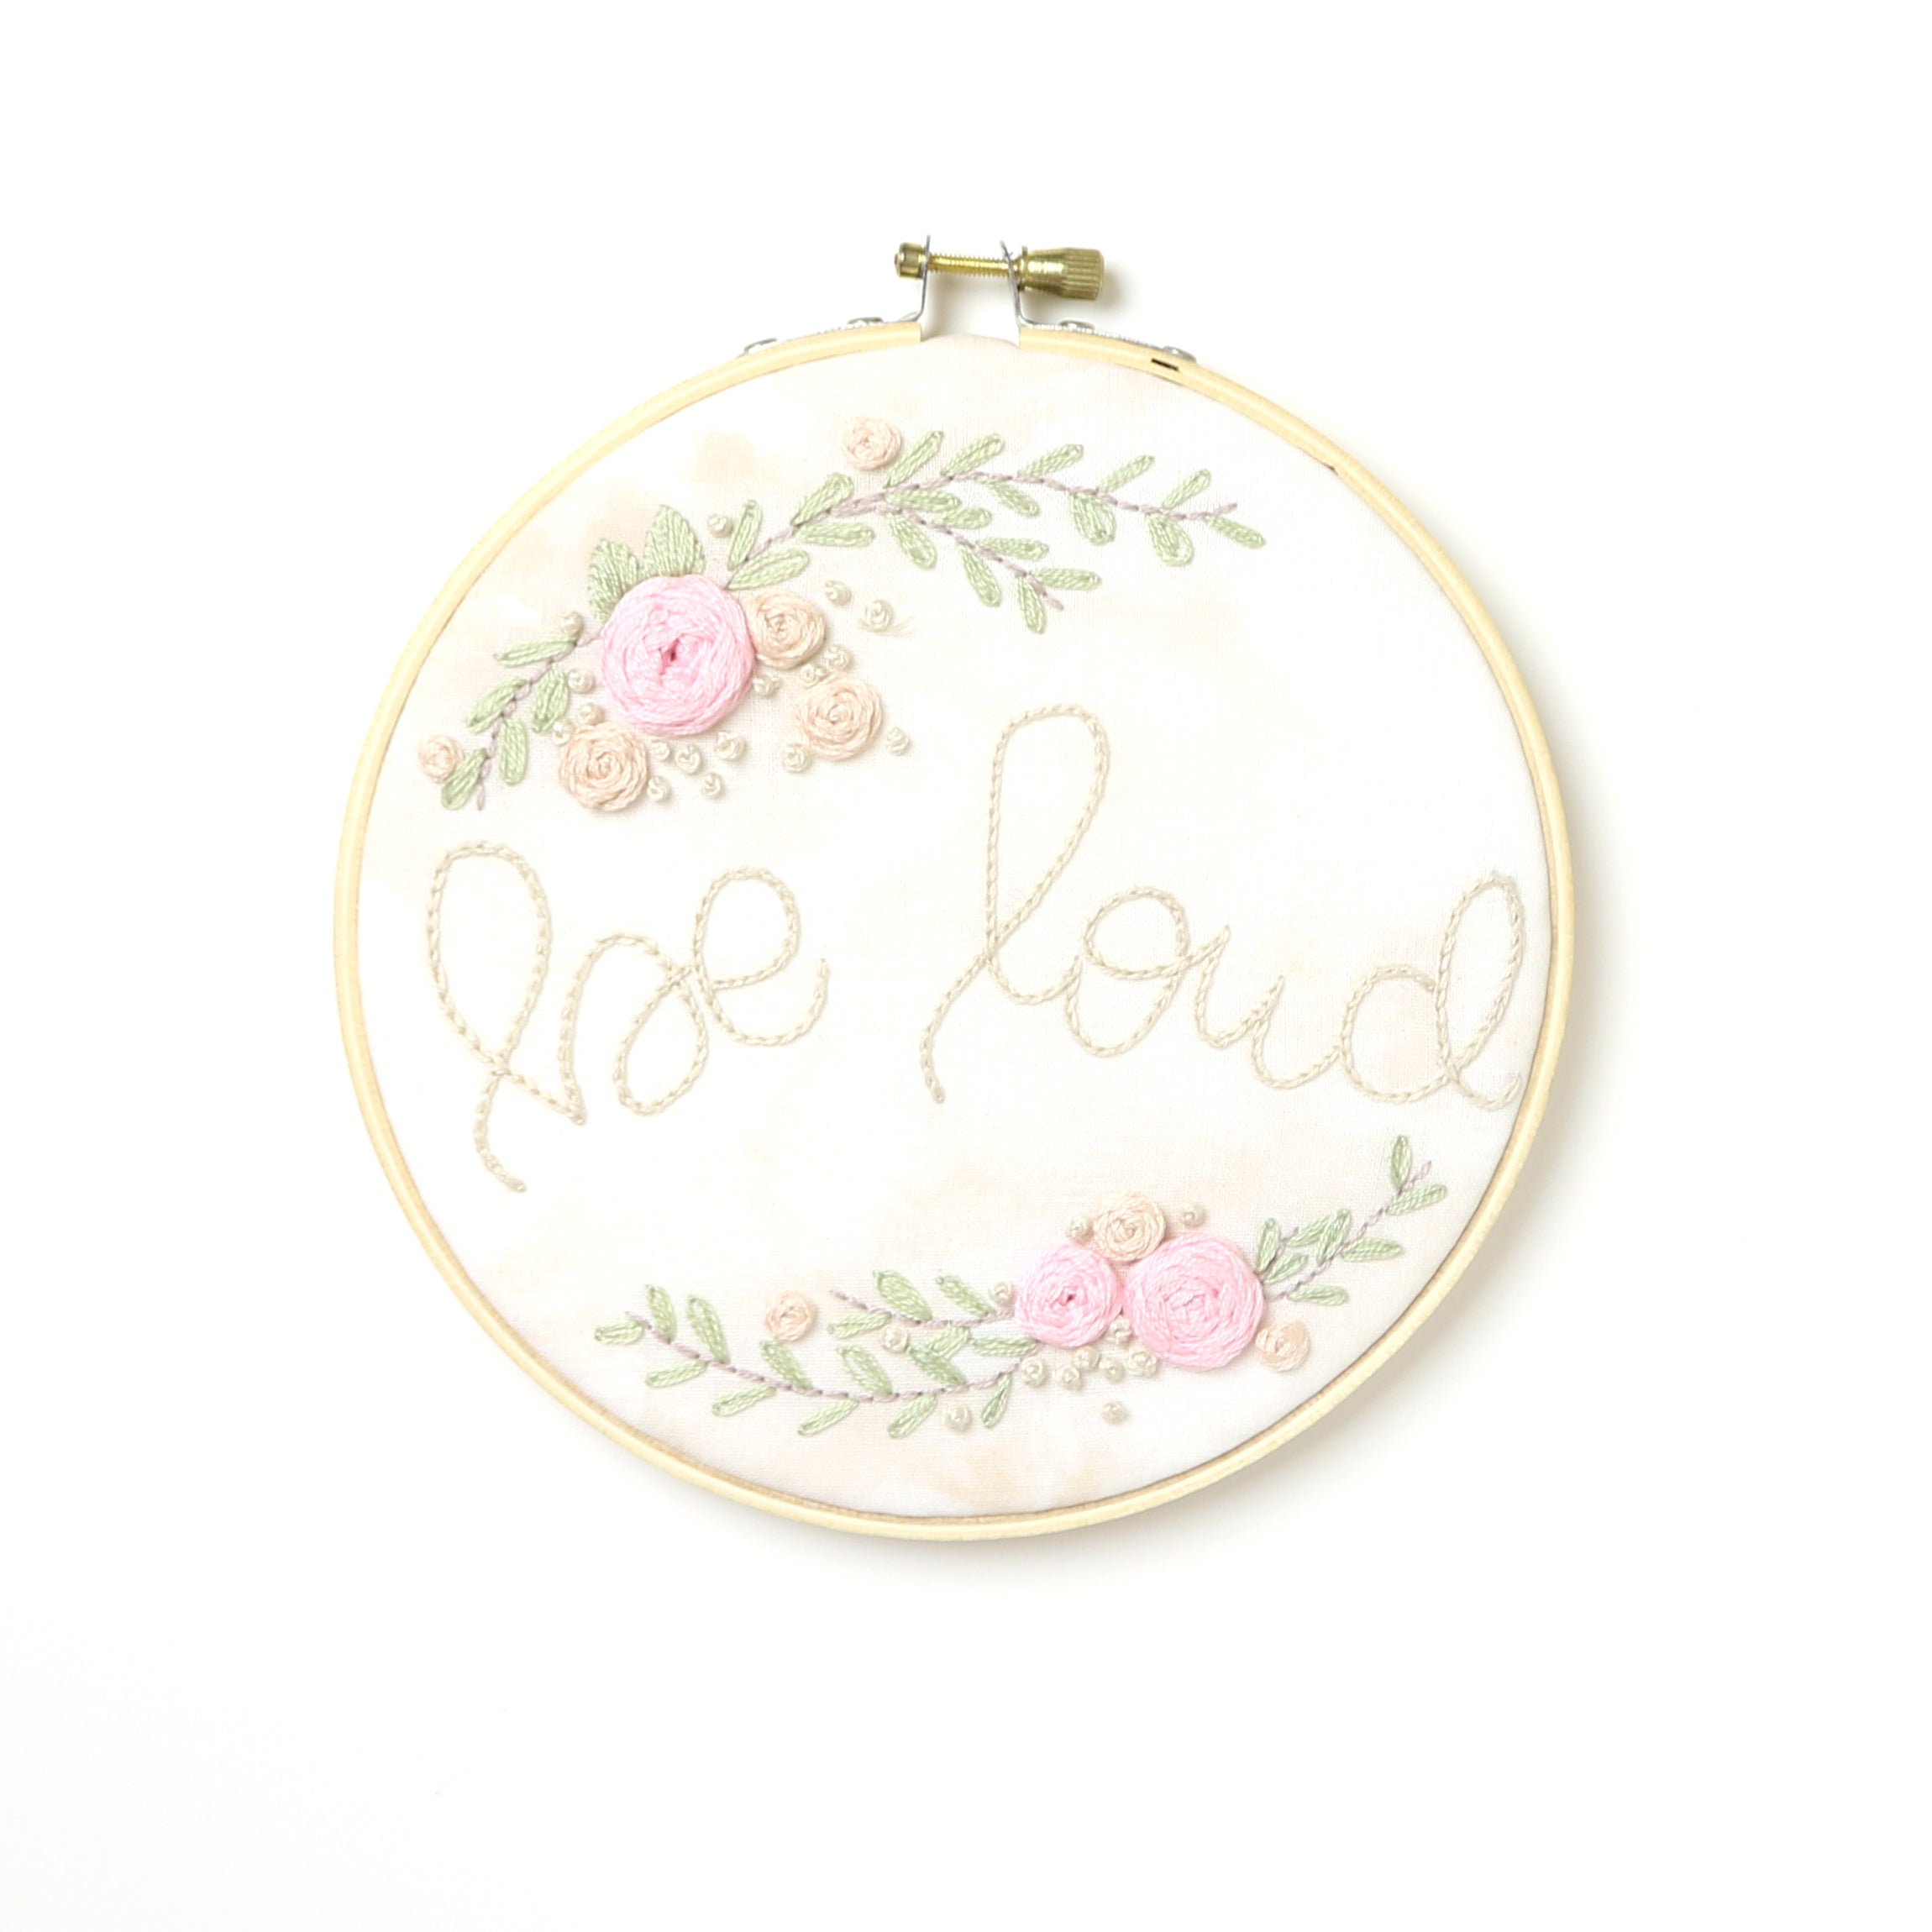 Be Loud Embroidery Hoop